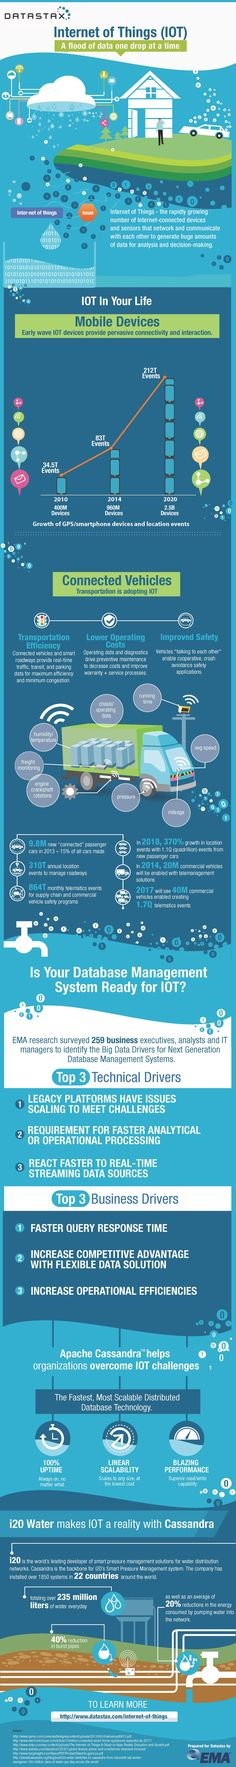 What the Internet of Things will Look Like in 2020 [Infographic] #IoT via Business Review Europe